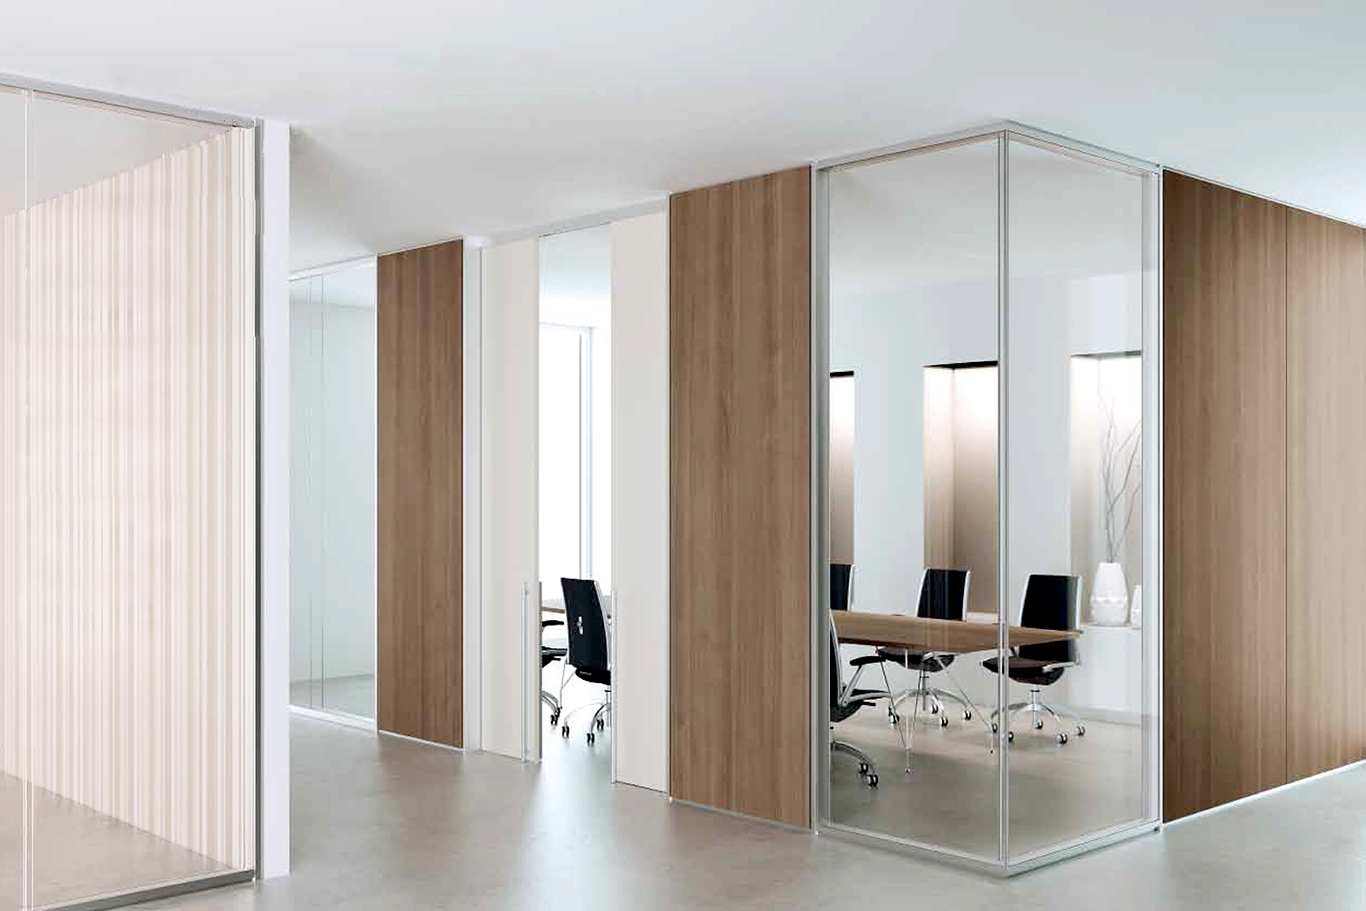 Glass wall systems by stylesglass modernfoldstyles Opening glass walls